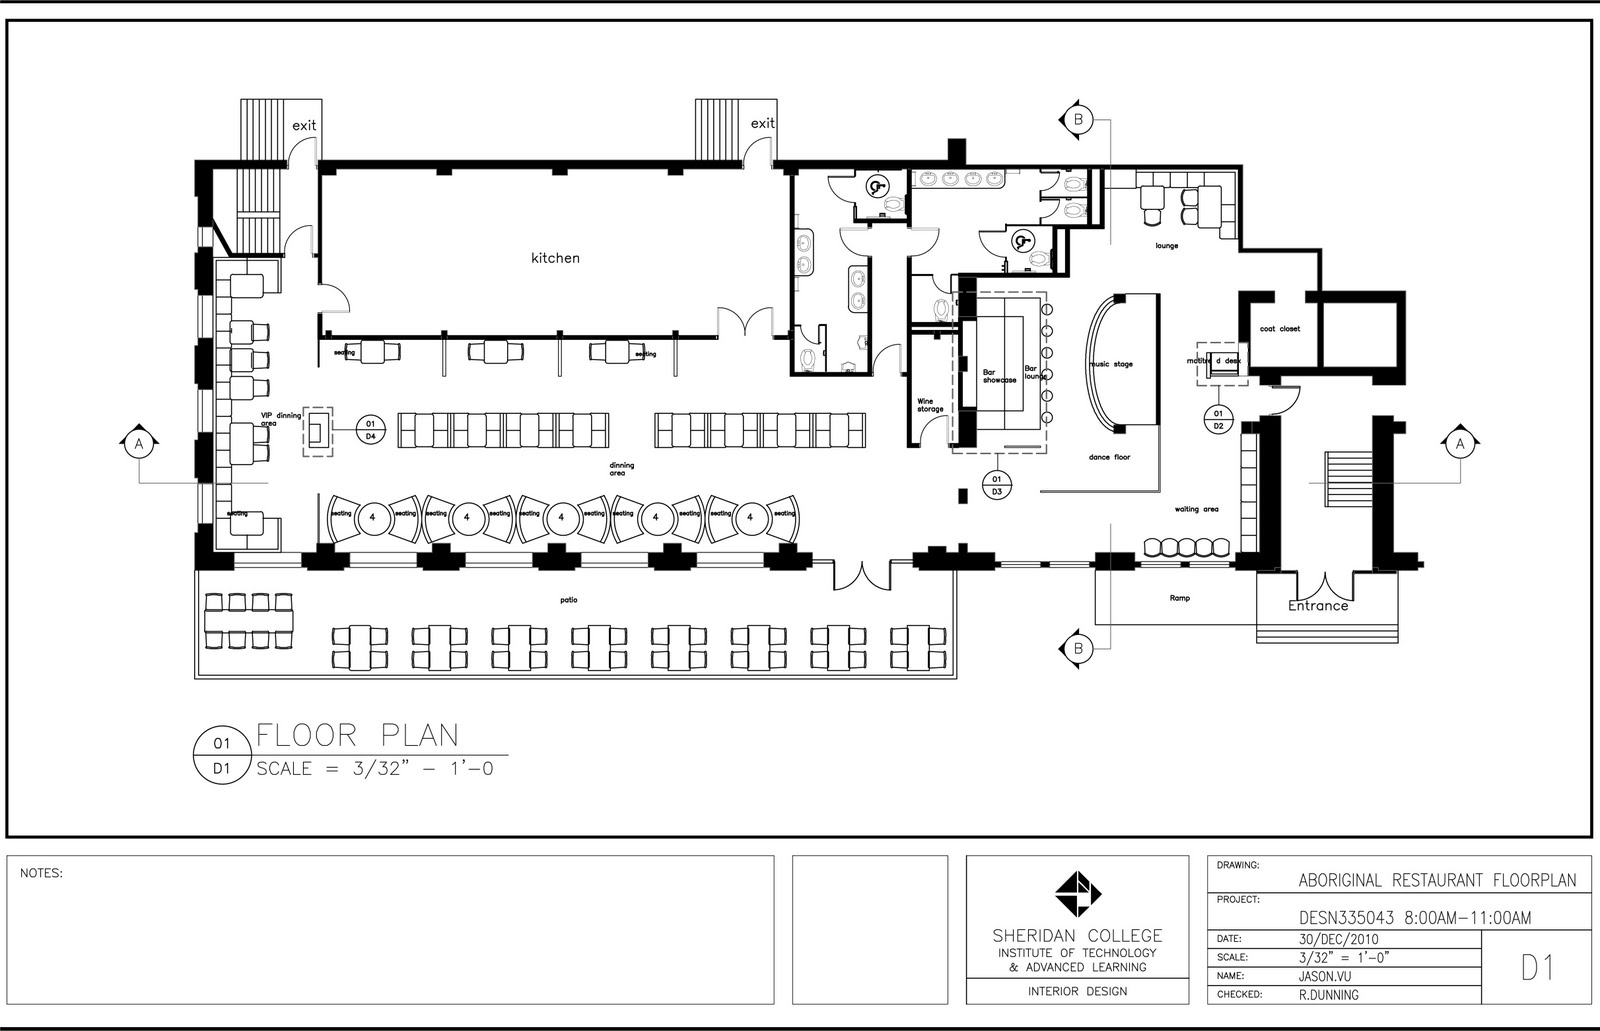 Restaurant floor plans home design and decor reviews Rest house plan